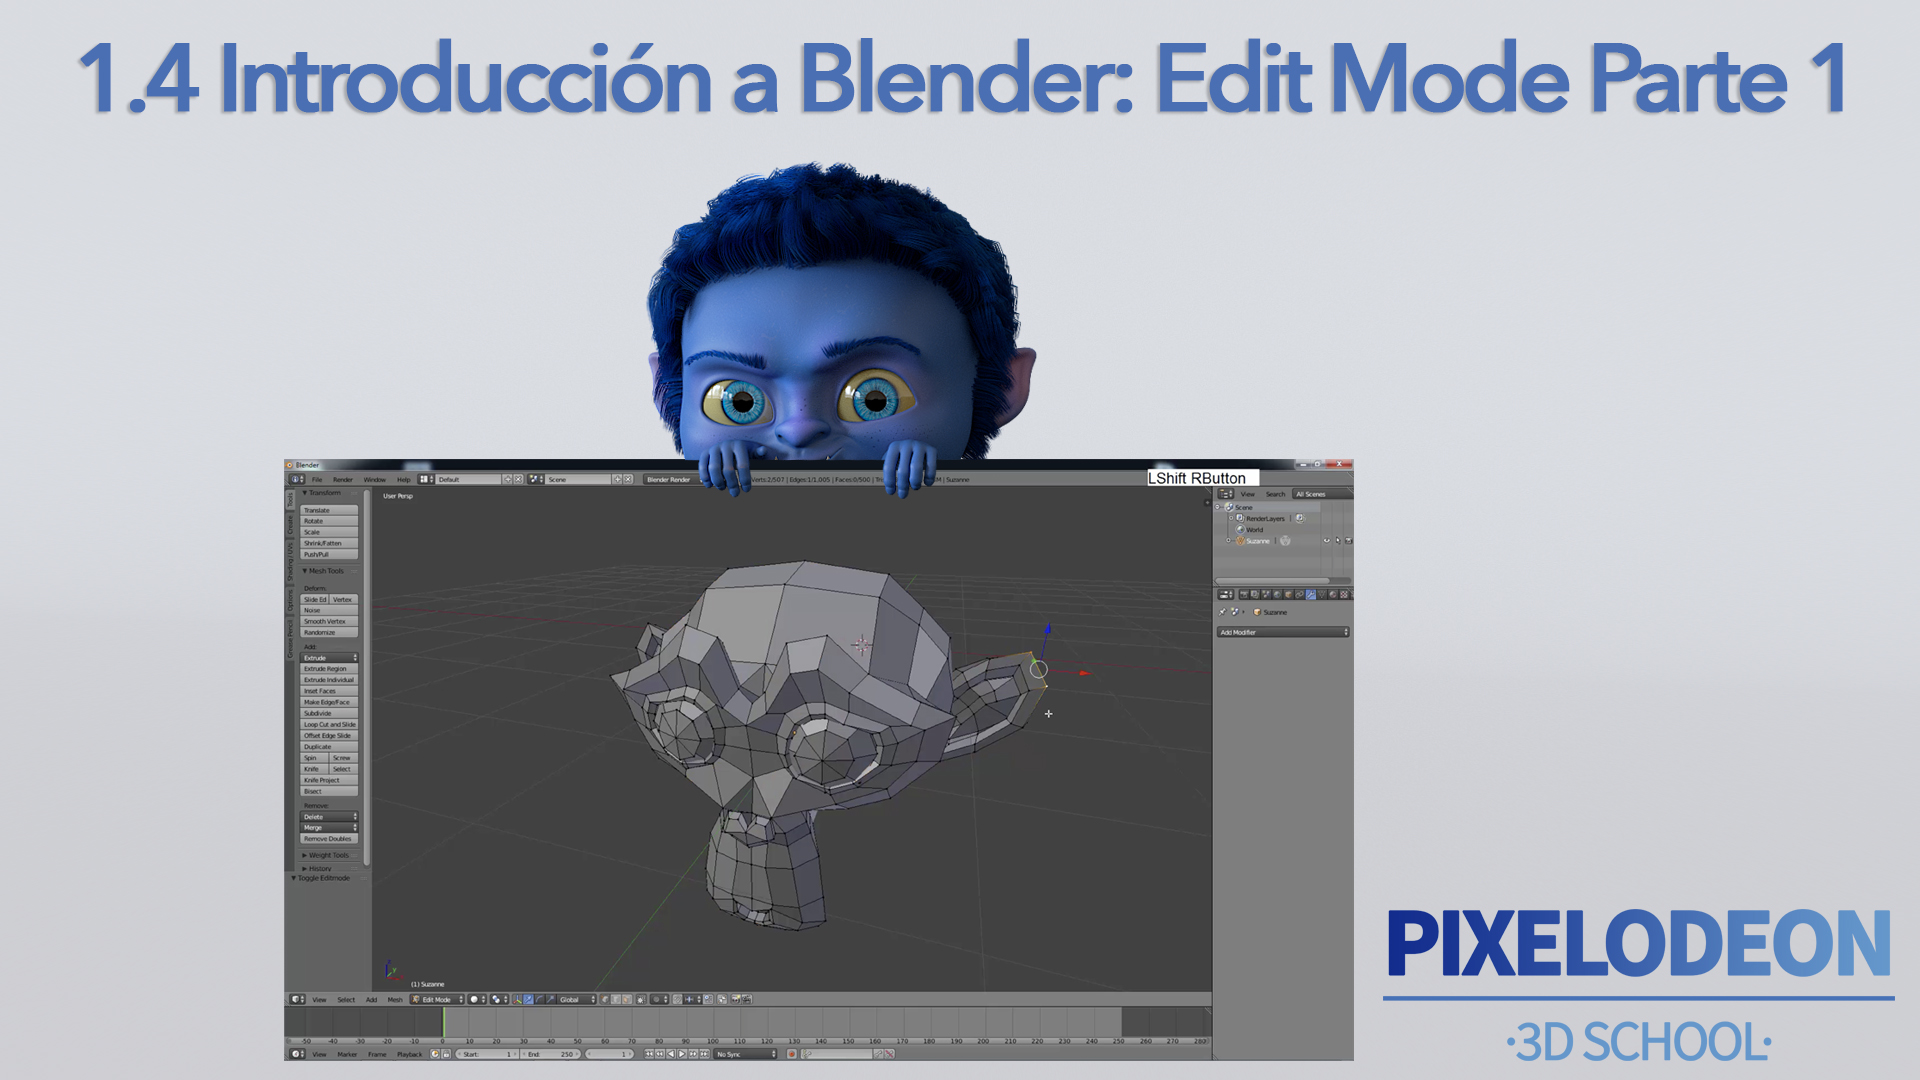 tutorial-1-4-introduccion-a-blender-edit-mode-parte-1